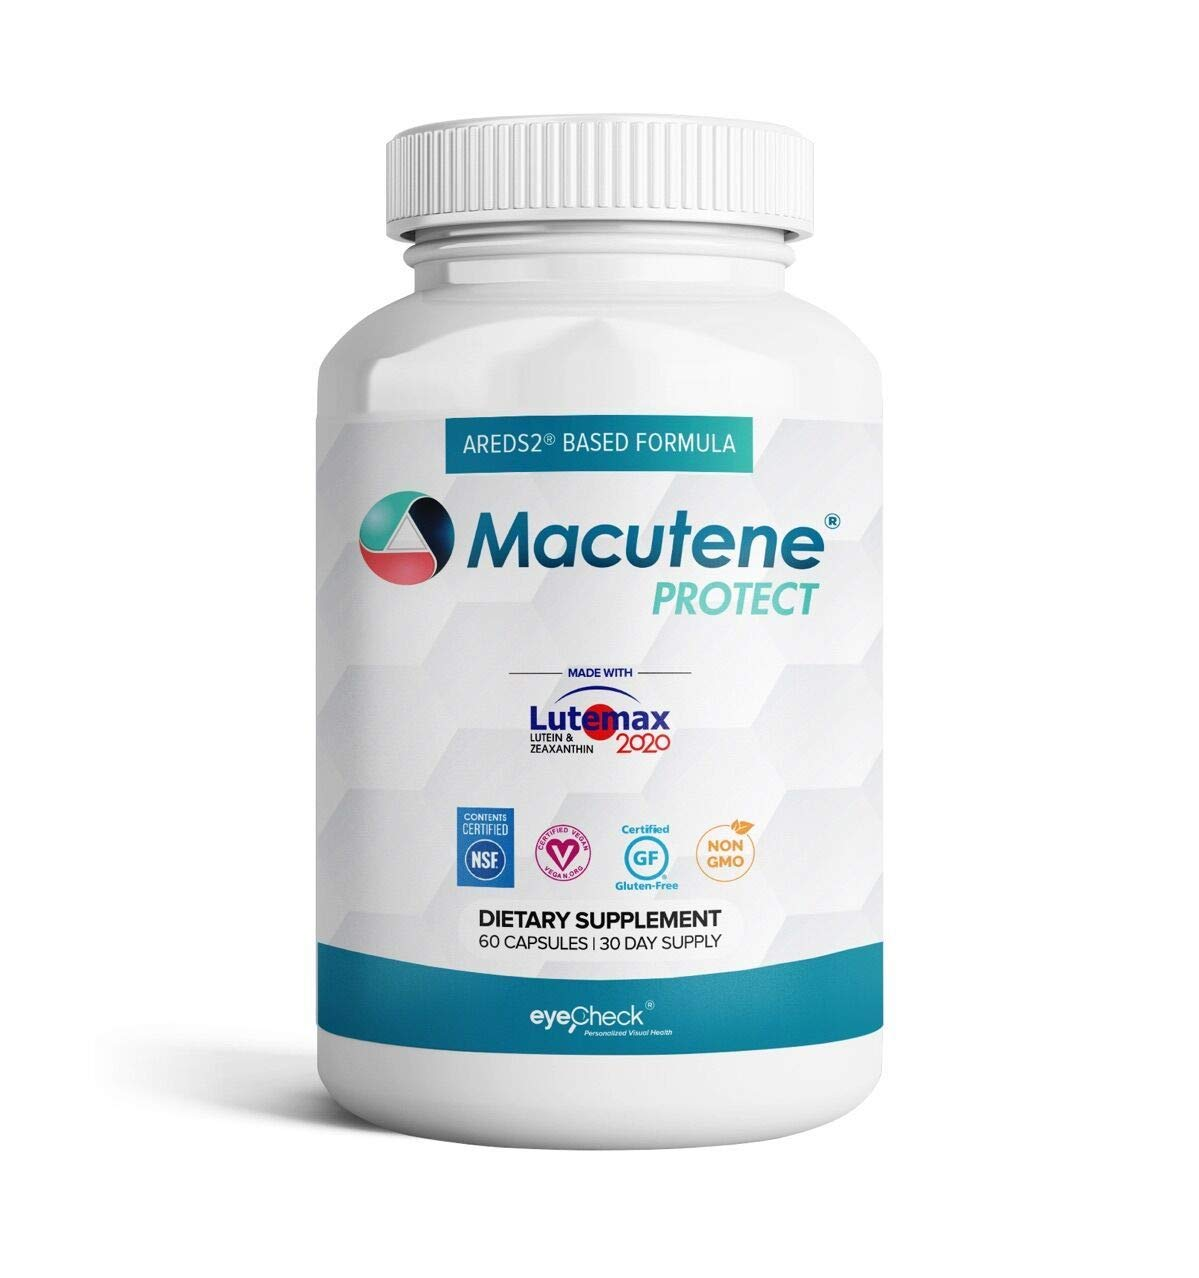 Macular Support Supplement & Natural Eye Health Vitamin, Formula Based On AREDS2® Clinical Trials with Carotenoids (Lutein and Zeaxanthin) Bilberry Quercetin EGCG - Macutene® Protect (60 Capsules)